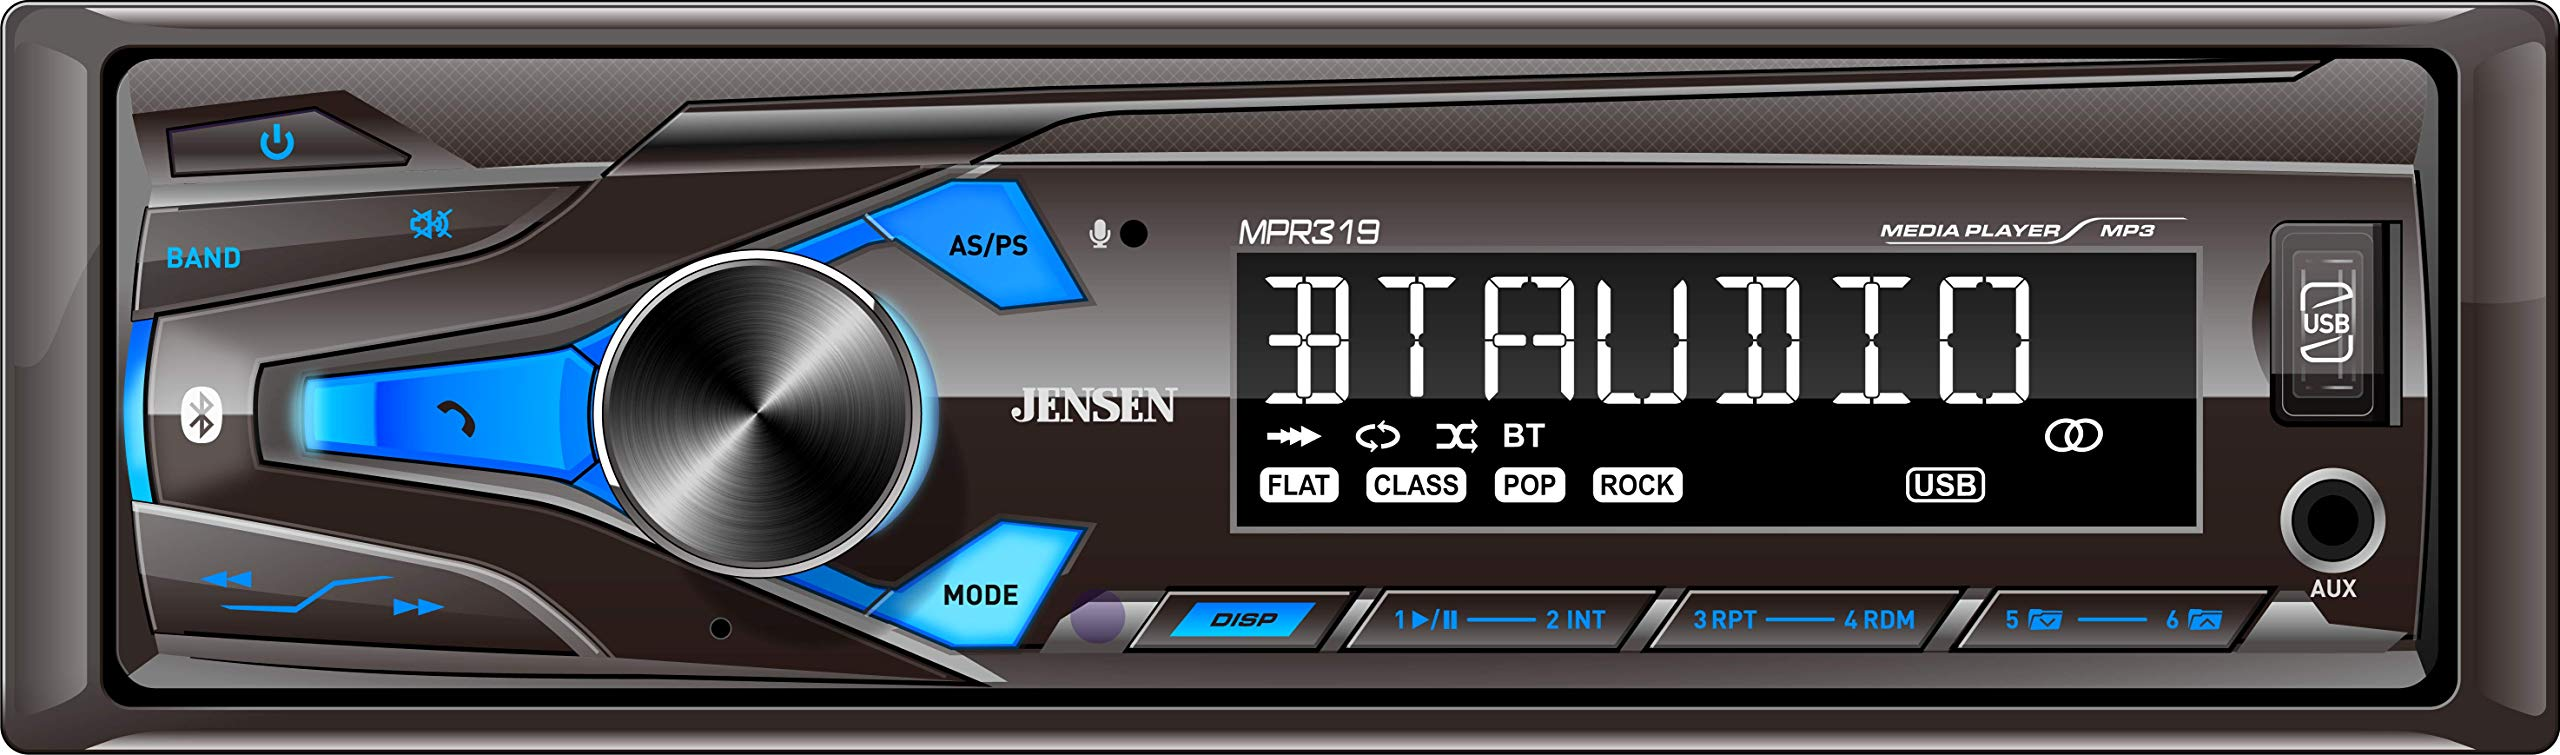 JENSEN MPR319 Single DIN Car Stereo Receiver with 7 Character LCD Built-in Bluetooth/MP3/USB by Jensen